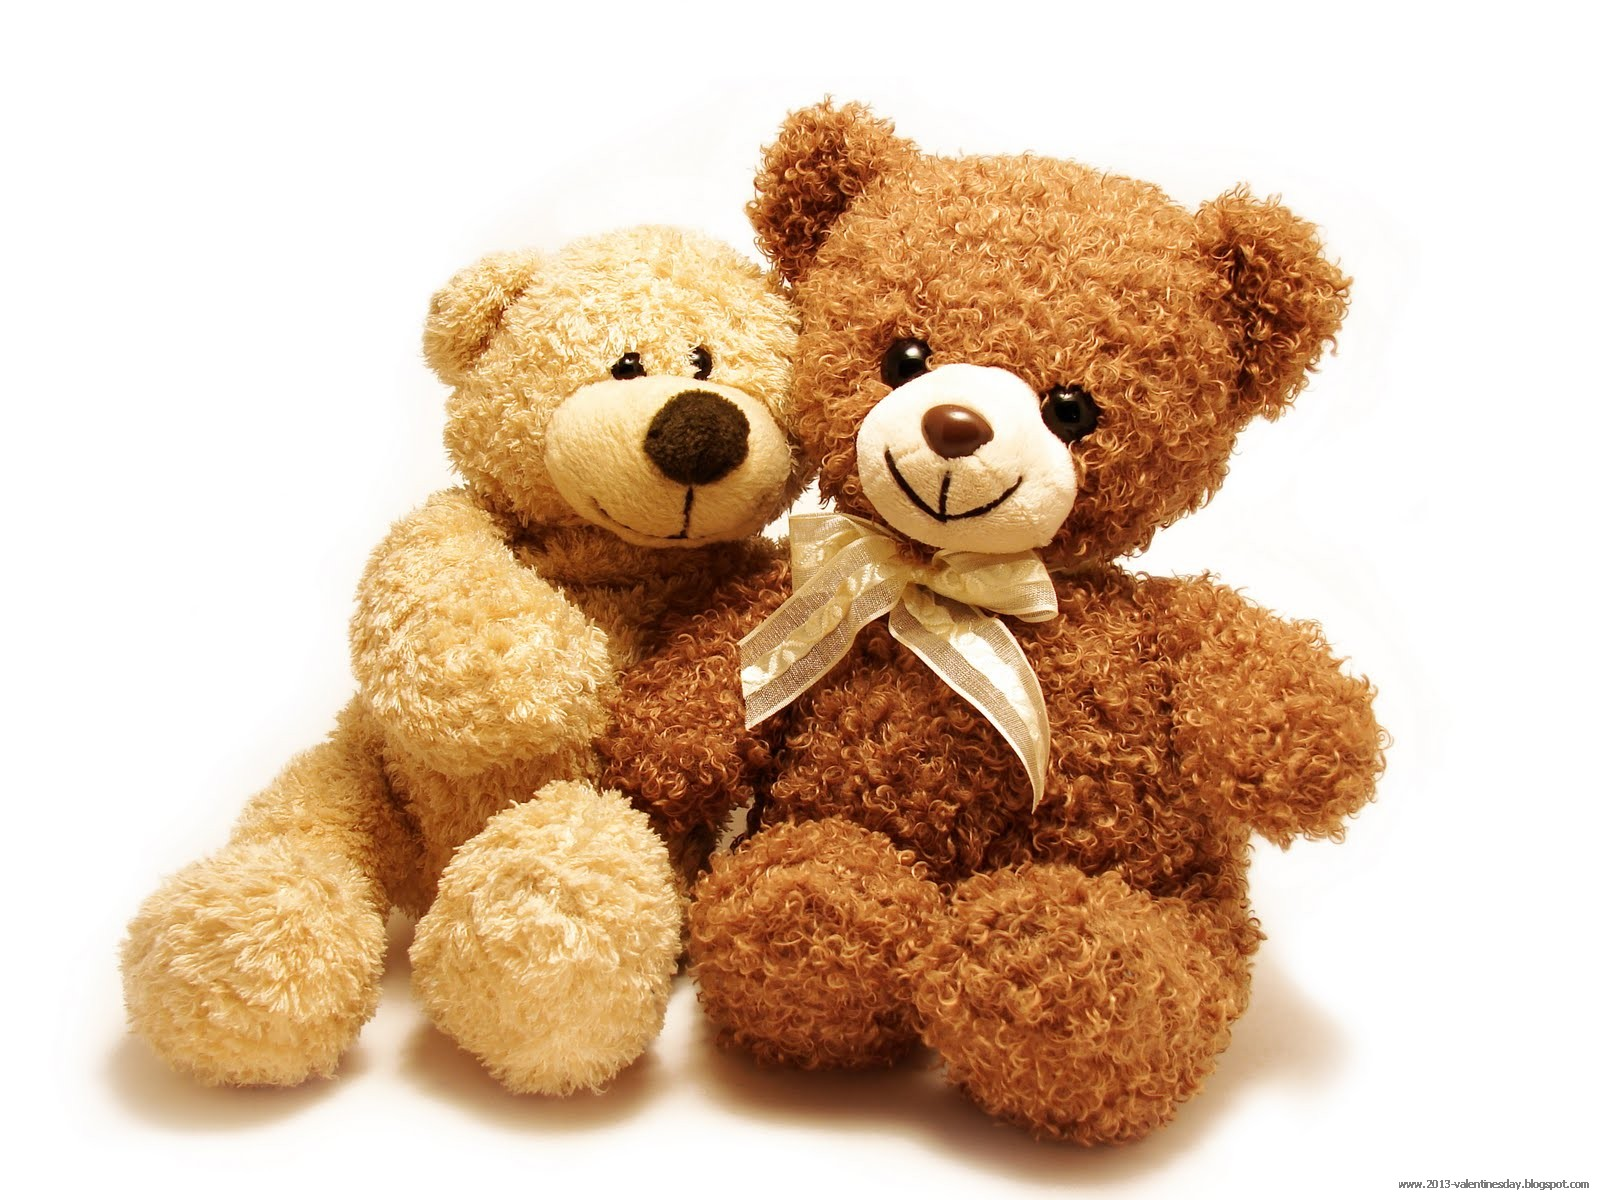 Cute Teddy Bears Wallpapers For Mobile Wallpaper Cute Teddy Bear Pictures Hd Images Free Download Desktop 1600x1200